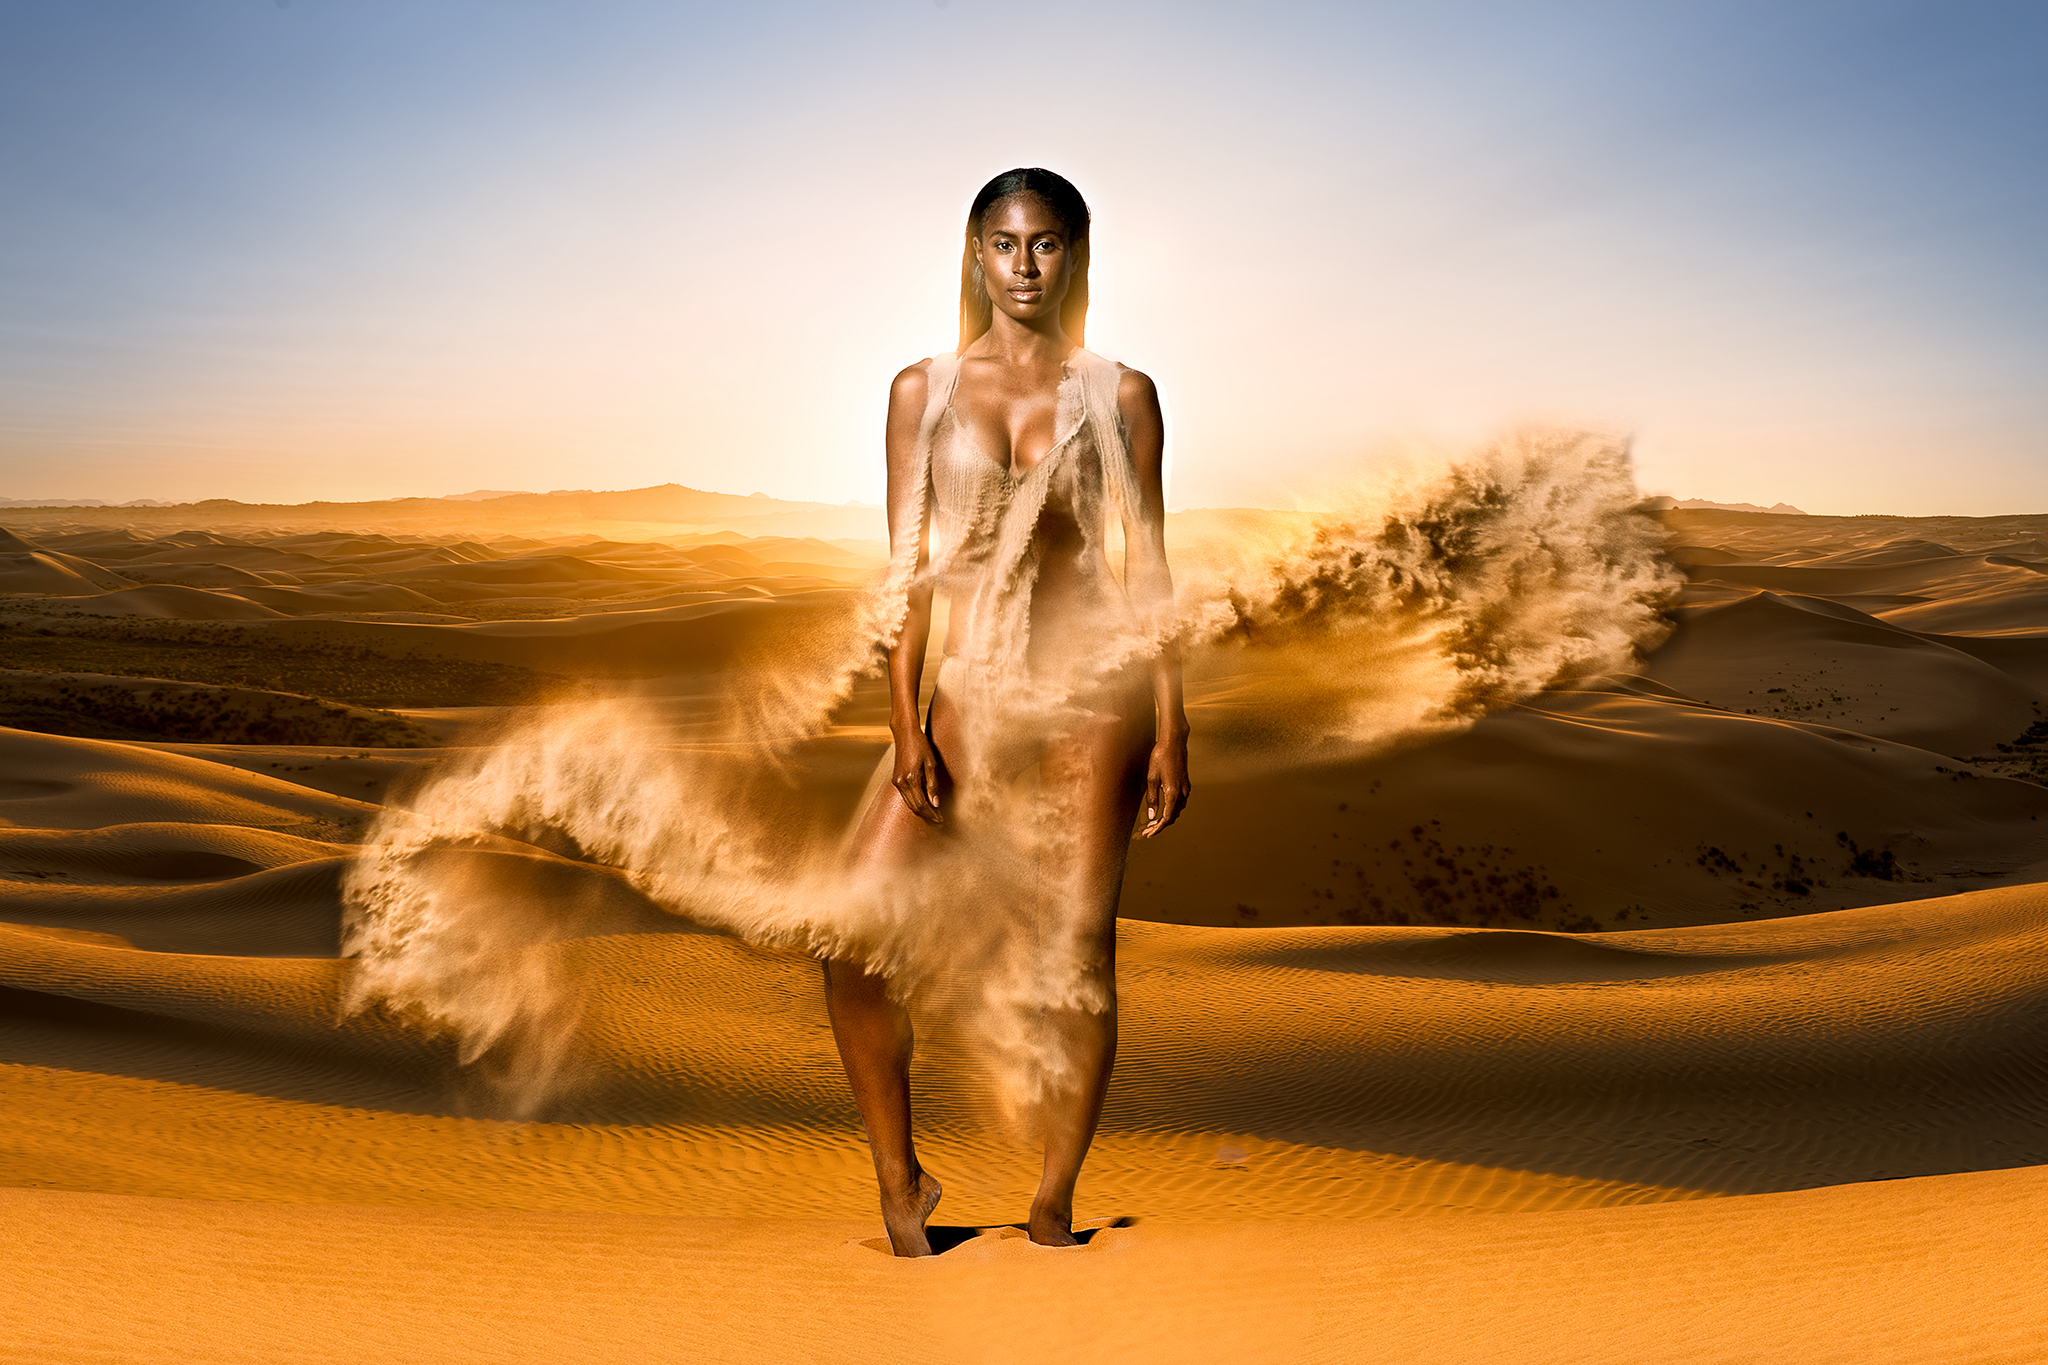 Desert Sand Concept Photo - Personal Work